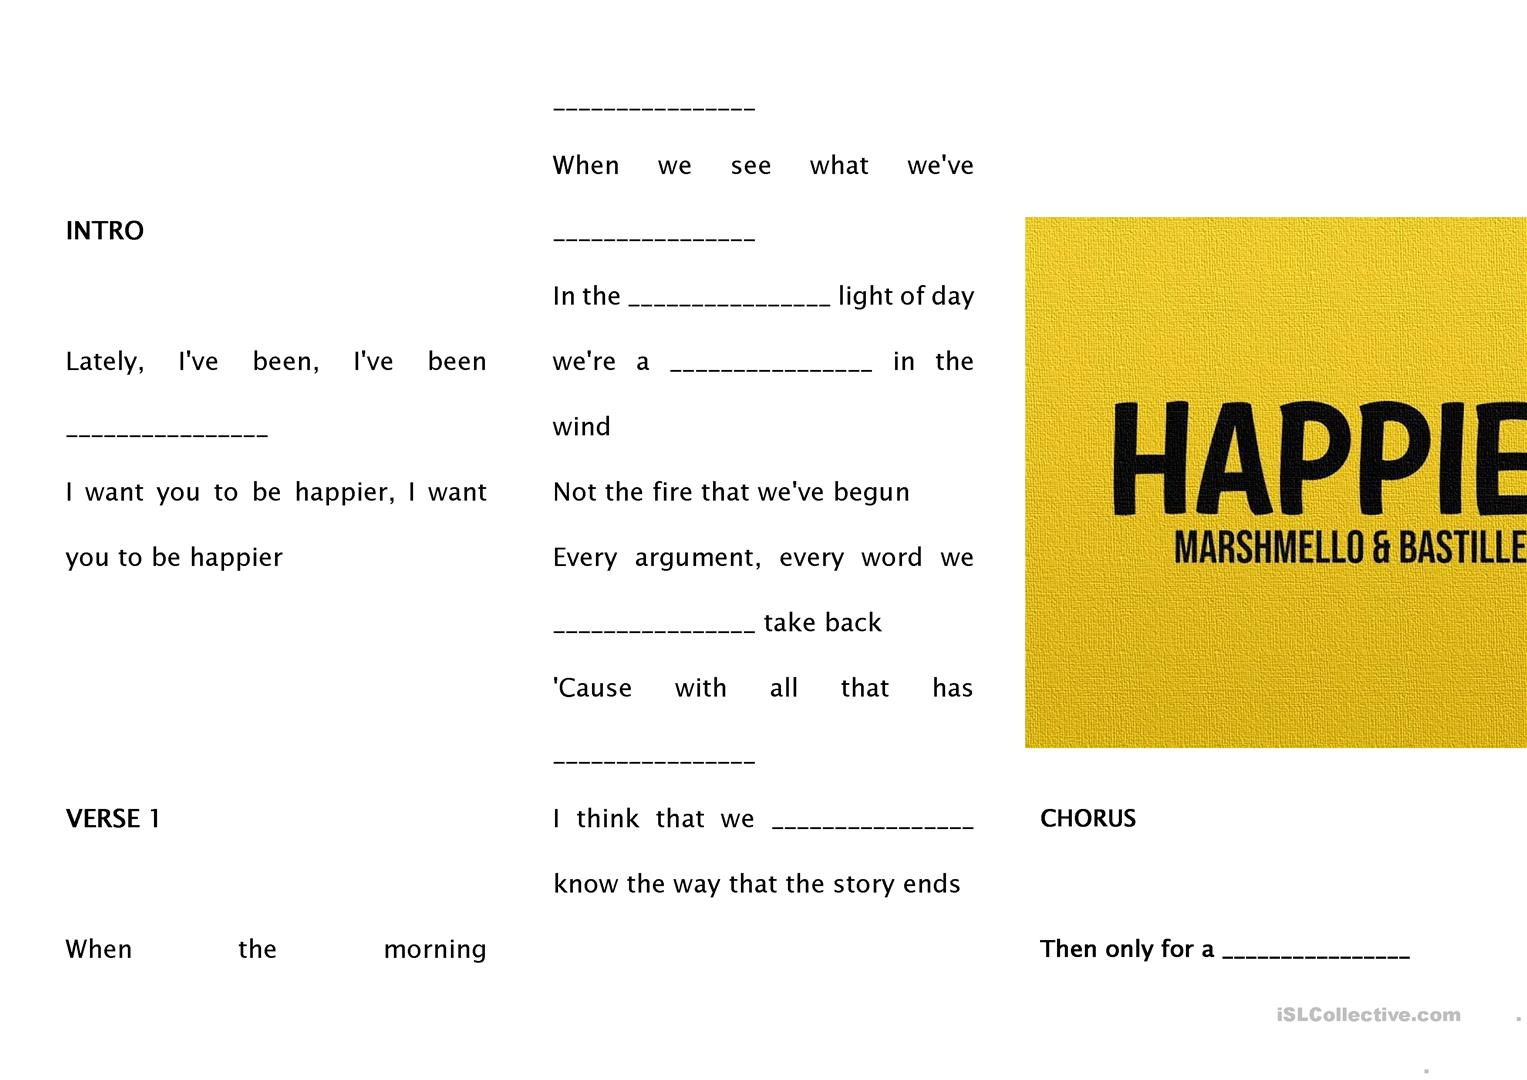 Happier By Bastille Marshmello Song Gap Fill Worksheet